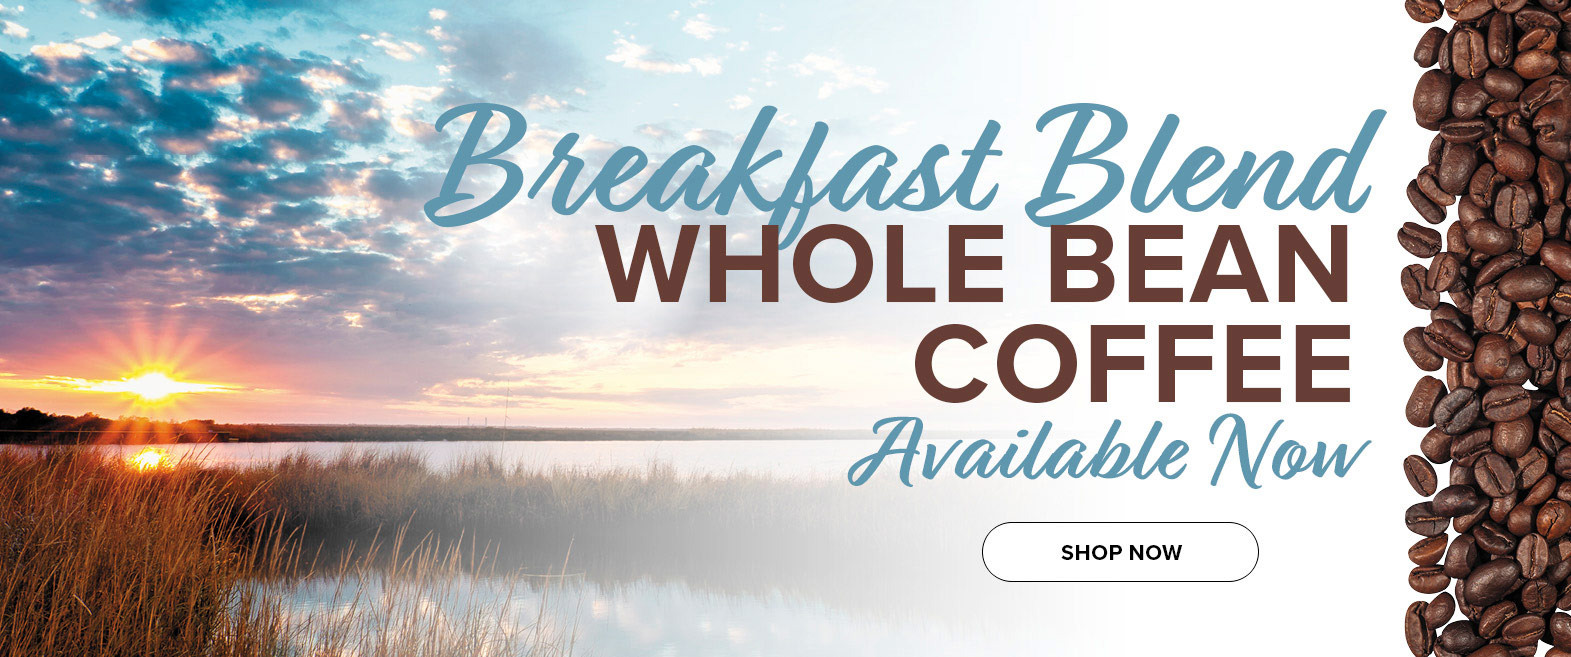 Breakfast Blend Whole Bean Coffee.  Click to shop online